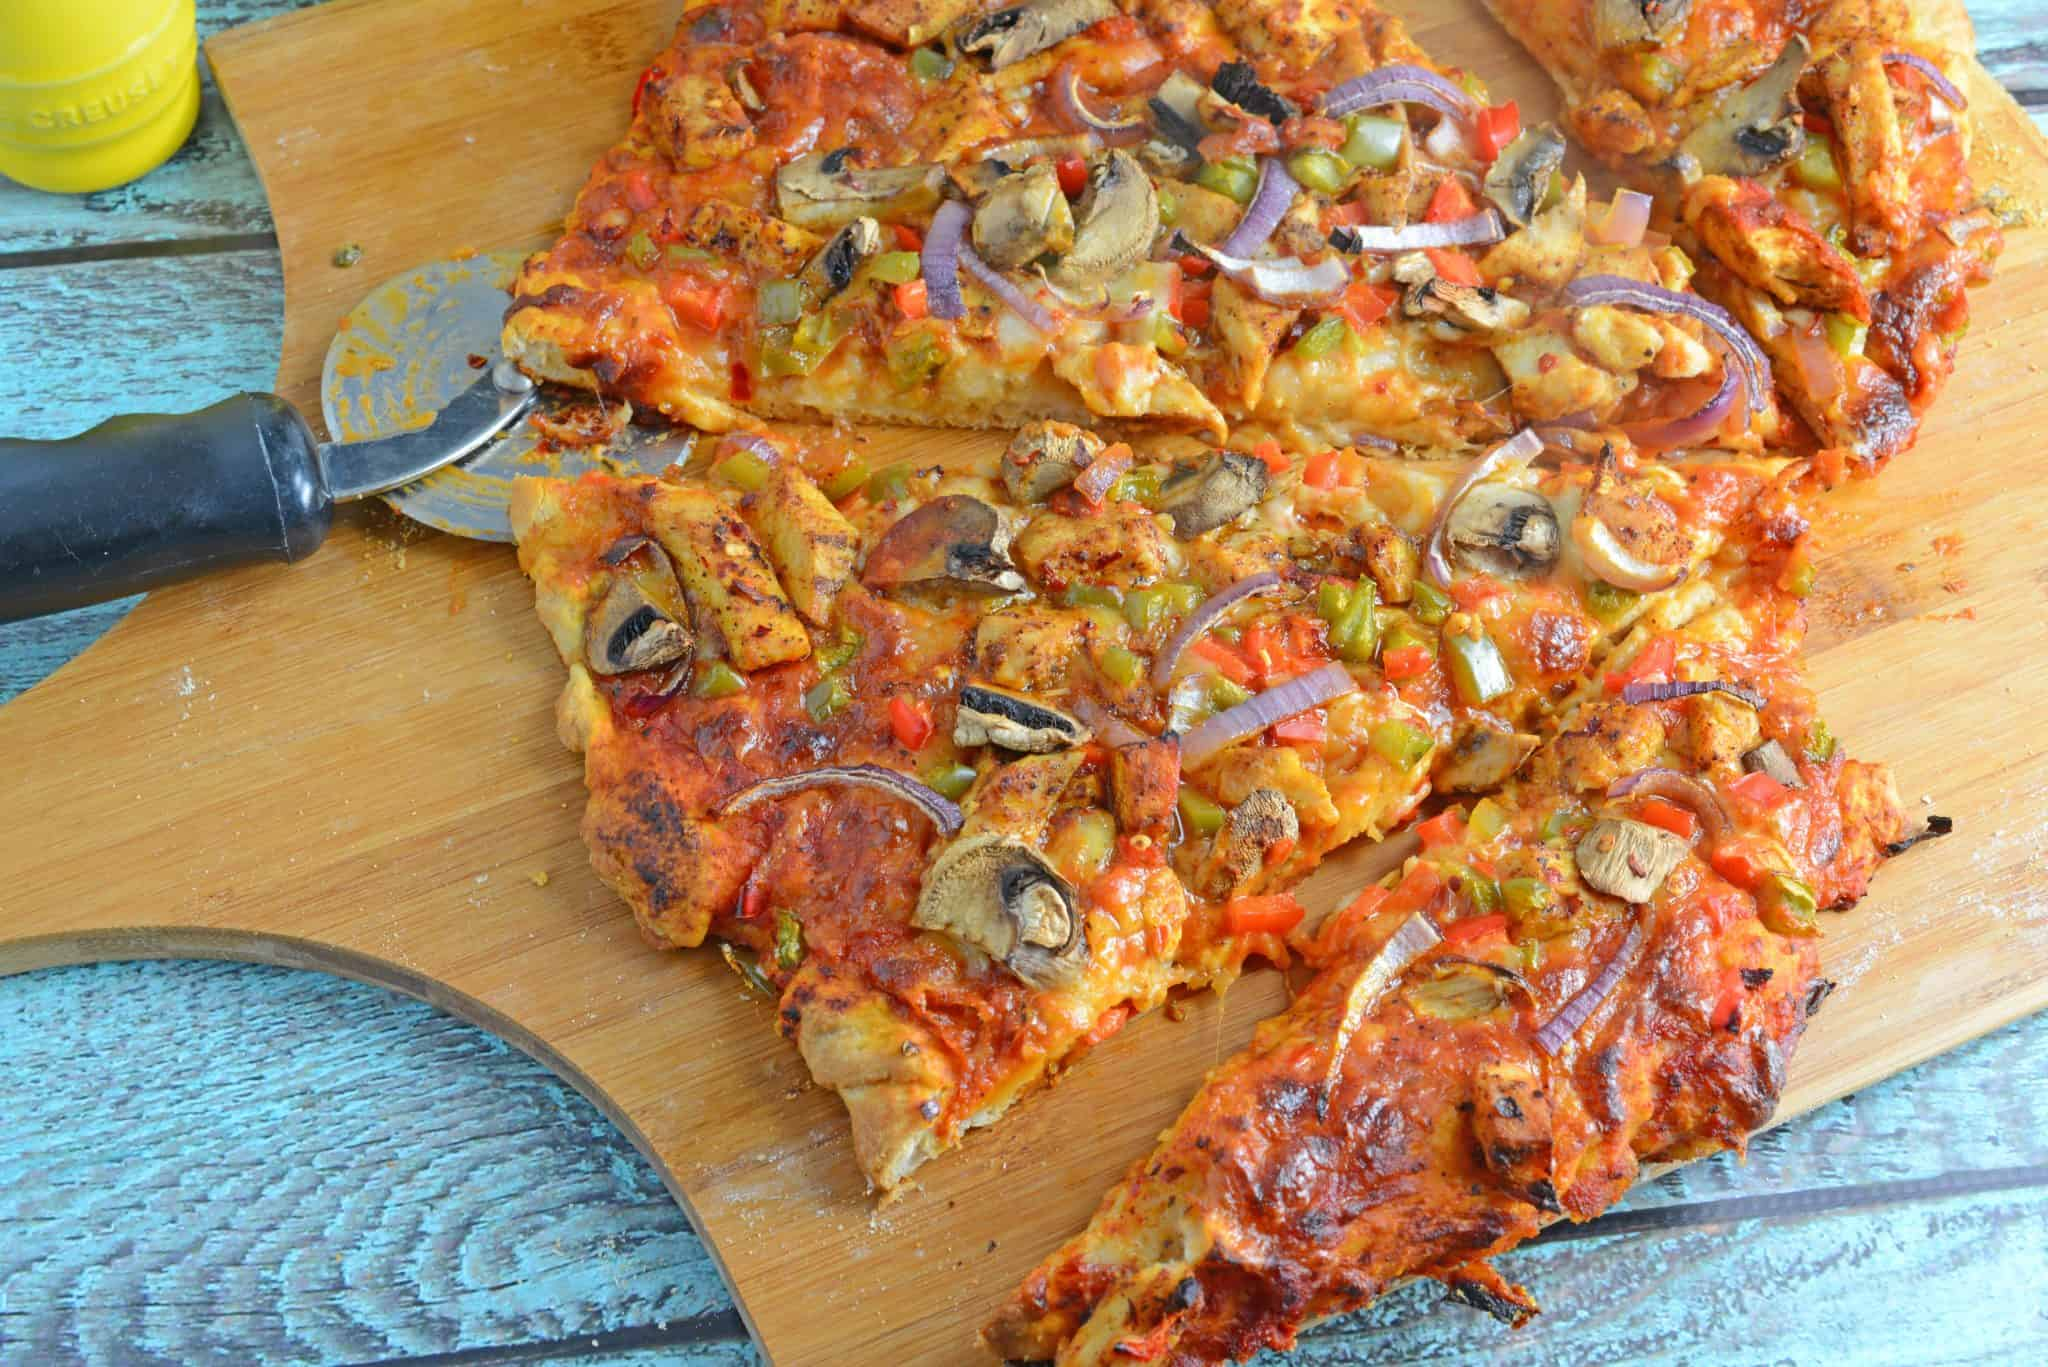 Caribbean Jerk Chicken Pizza is an easy homemade pizza recipe using spicy chicken, fresh vegetables and a touch of honey. #homemadepizza #jerkchicken #jerkchickenpizza www.savoryexperiments.com